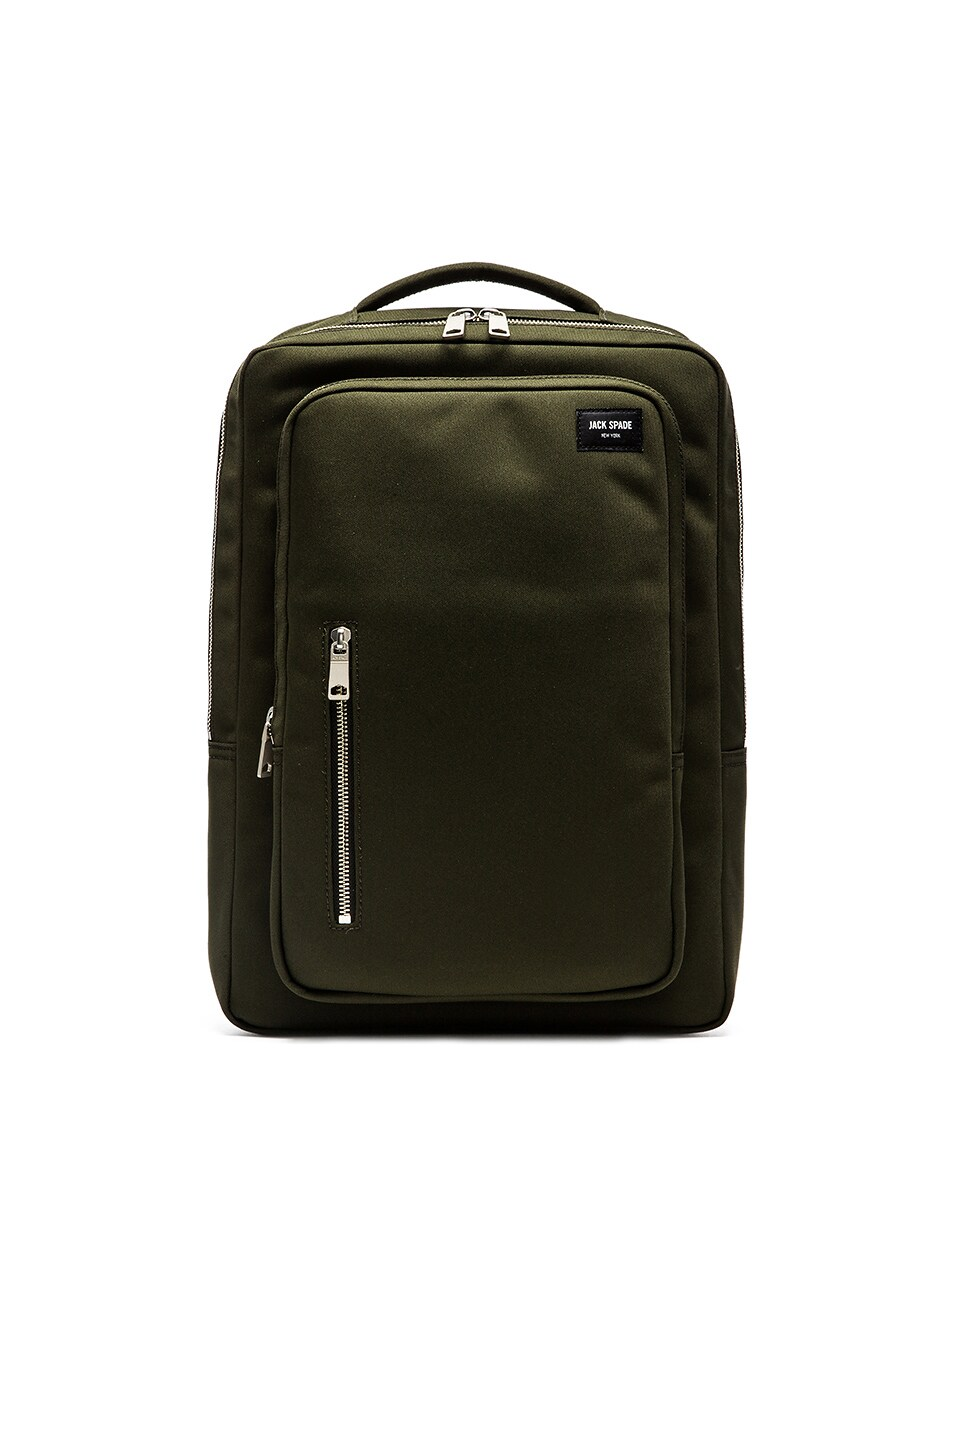 1f6a5c0353b2 Jack Spade Commuter Nylon Cargo Backpack in Green | REVOLVE